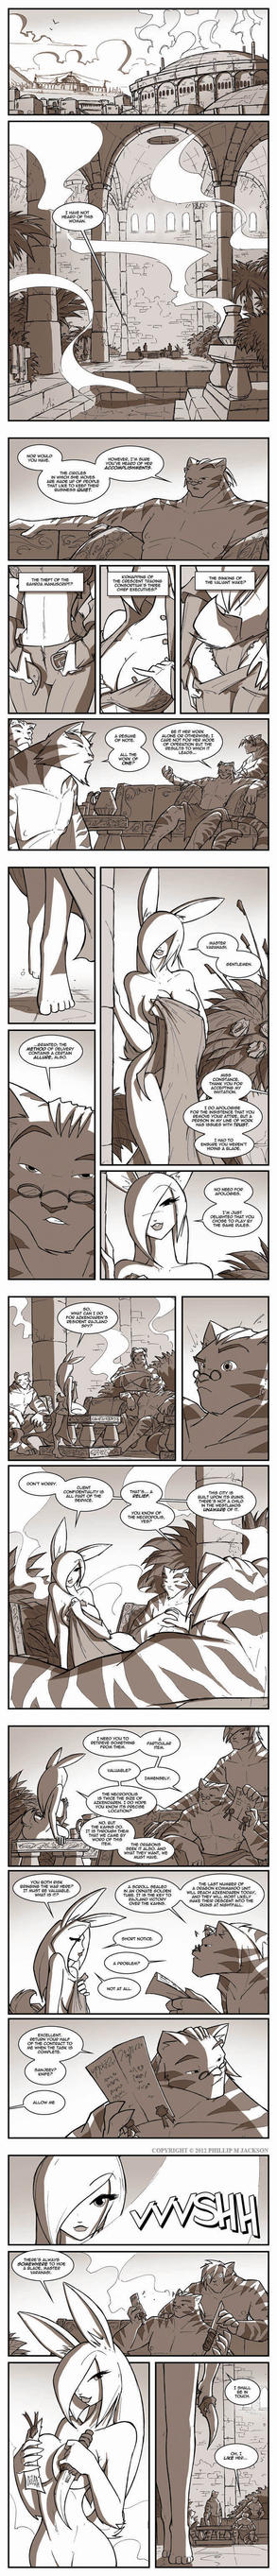 More Old Battle Bunnies Pages by jollyjack